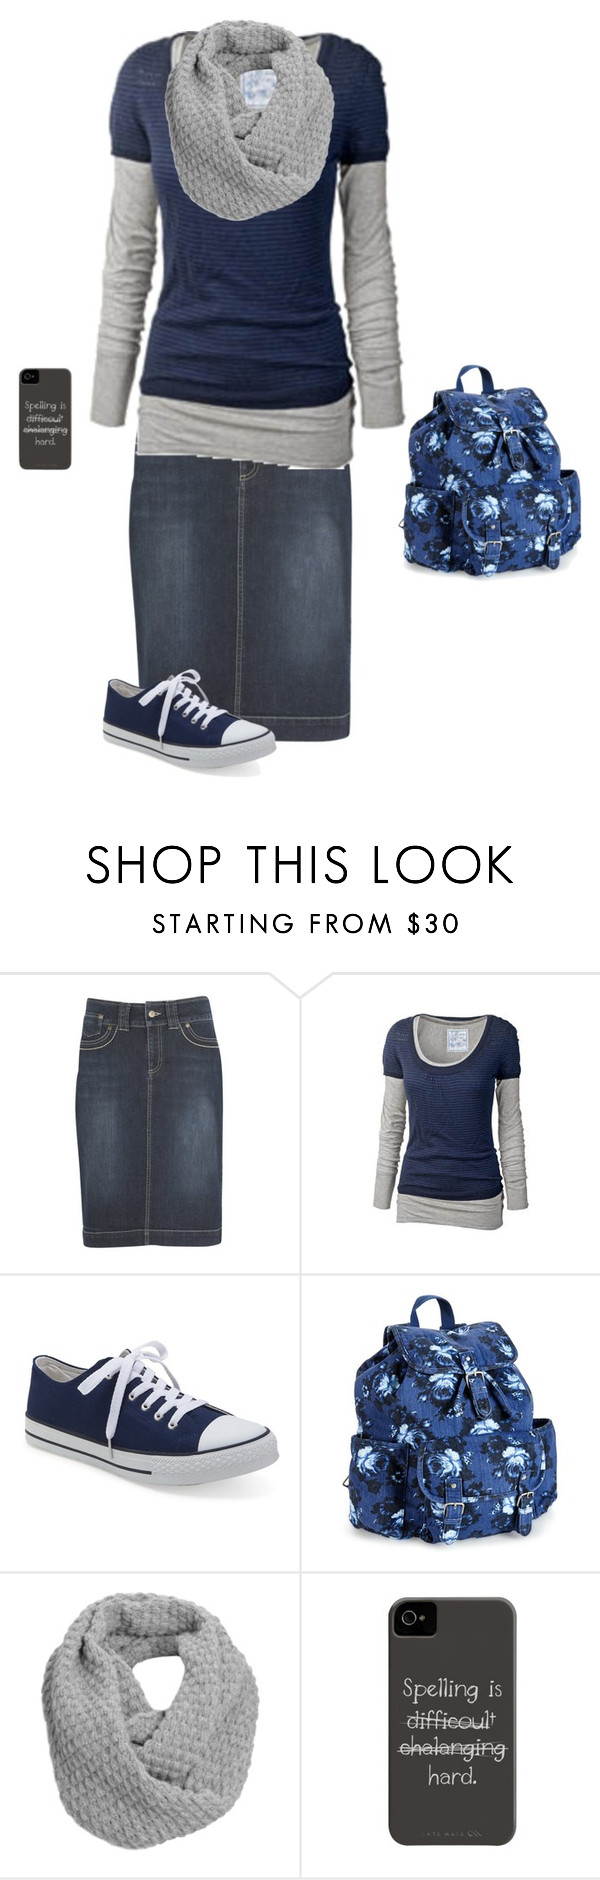 """""""School Morning"""" by modest-17 ❤ liked on Polyvore featuring kew.159, Fat Face, Aéropostale and Jigsaw"""